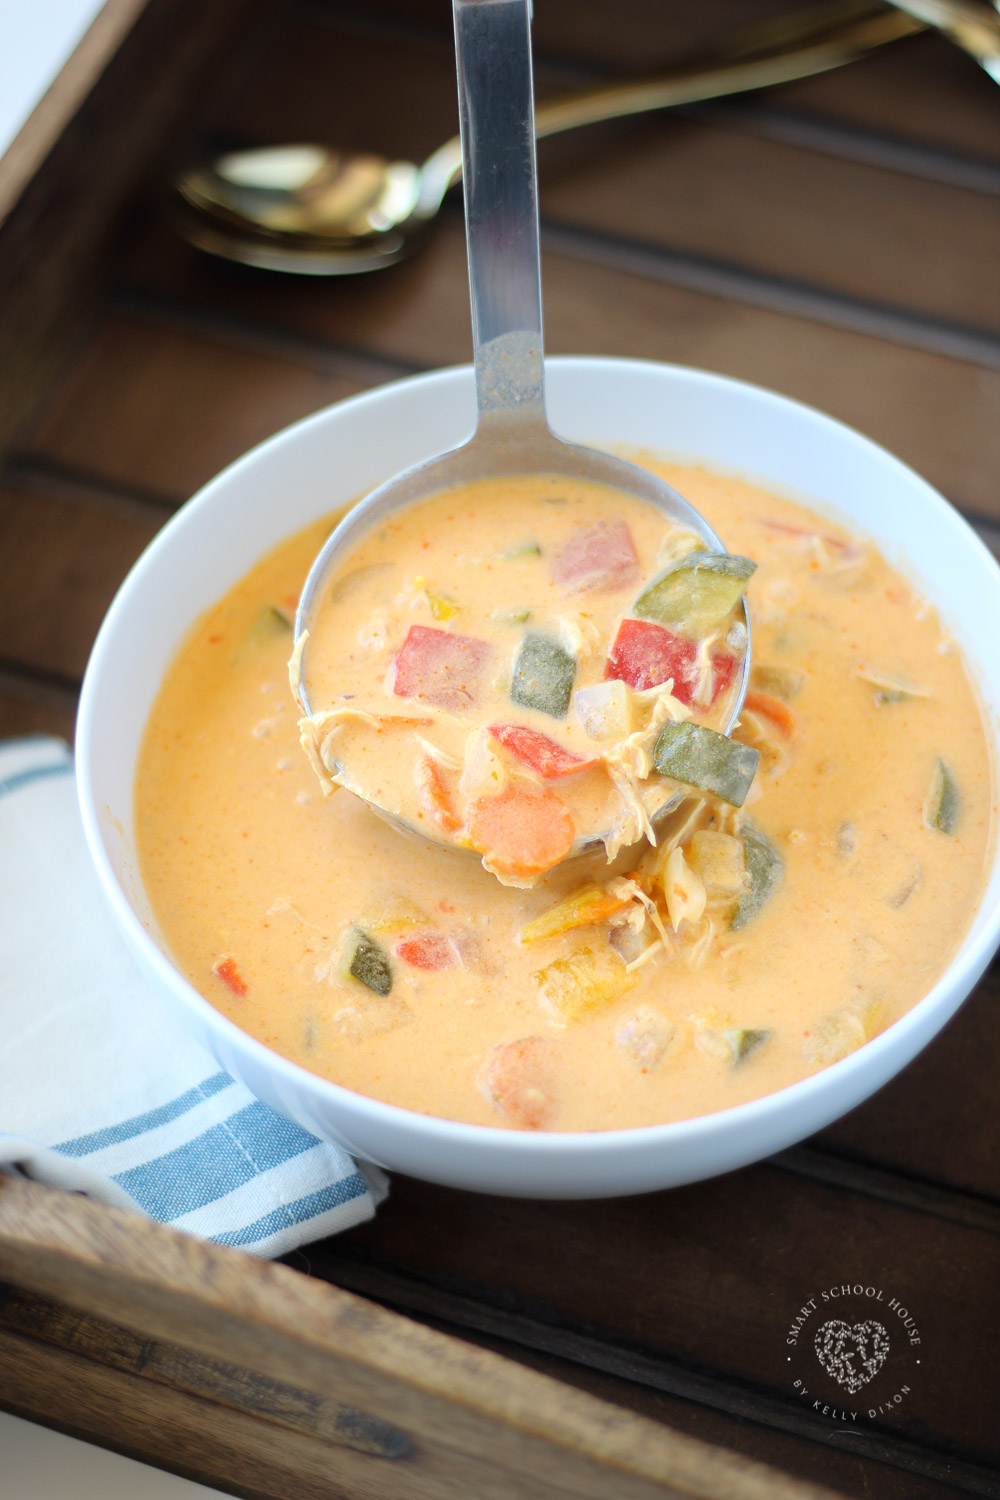 This creamy crock pot curry soup is a healthy dinner recipe that's perfect for fall and winter. Crock pot curry is one of the easiest meals to make and is so tasty. Your family will LOVE it! #chicken#chickencurry#slowcooker#crockpotrecipes#chickenrecipes#thaicurry